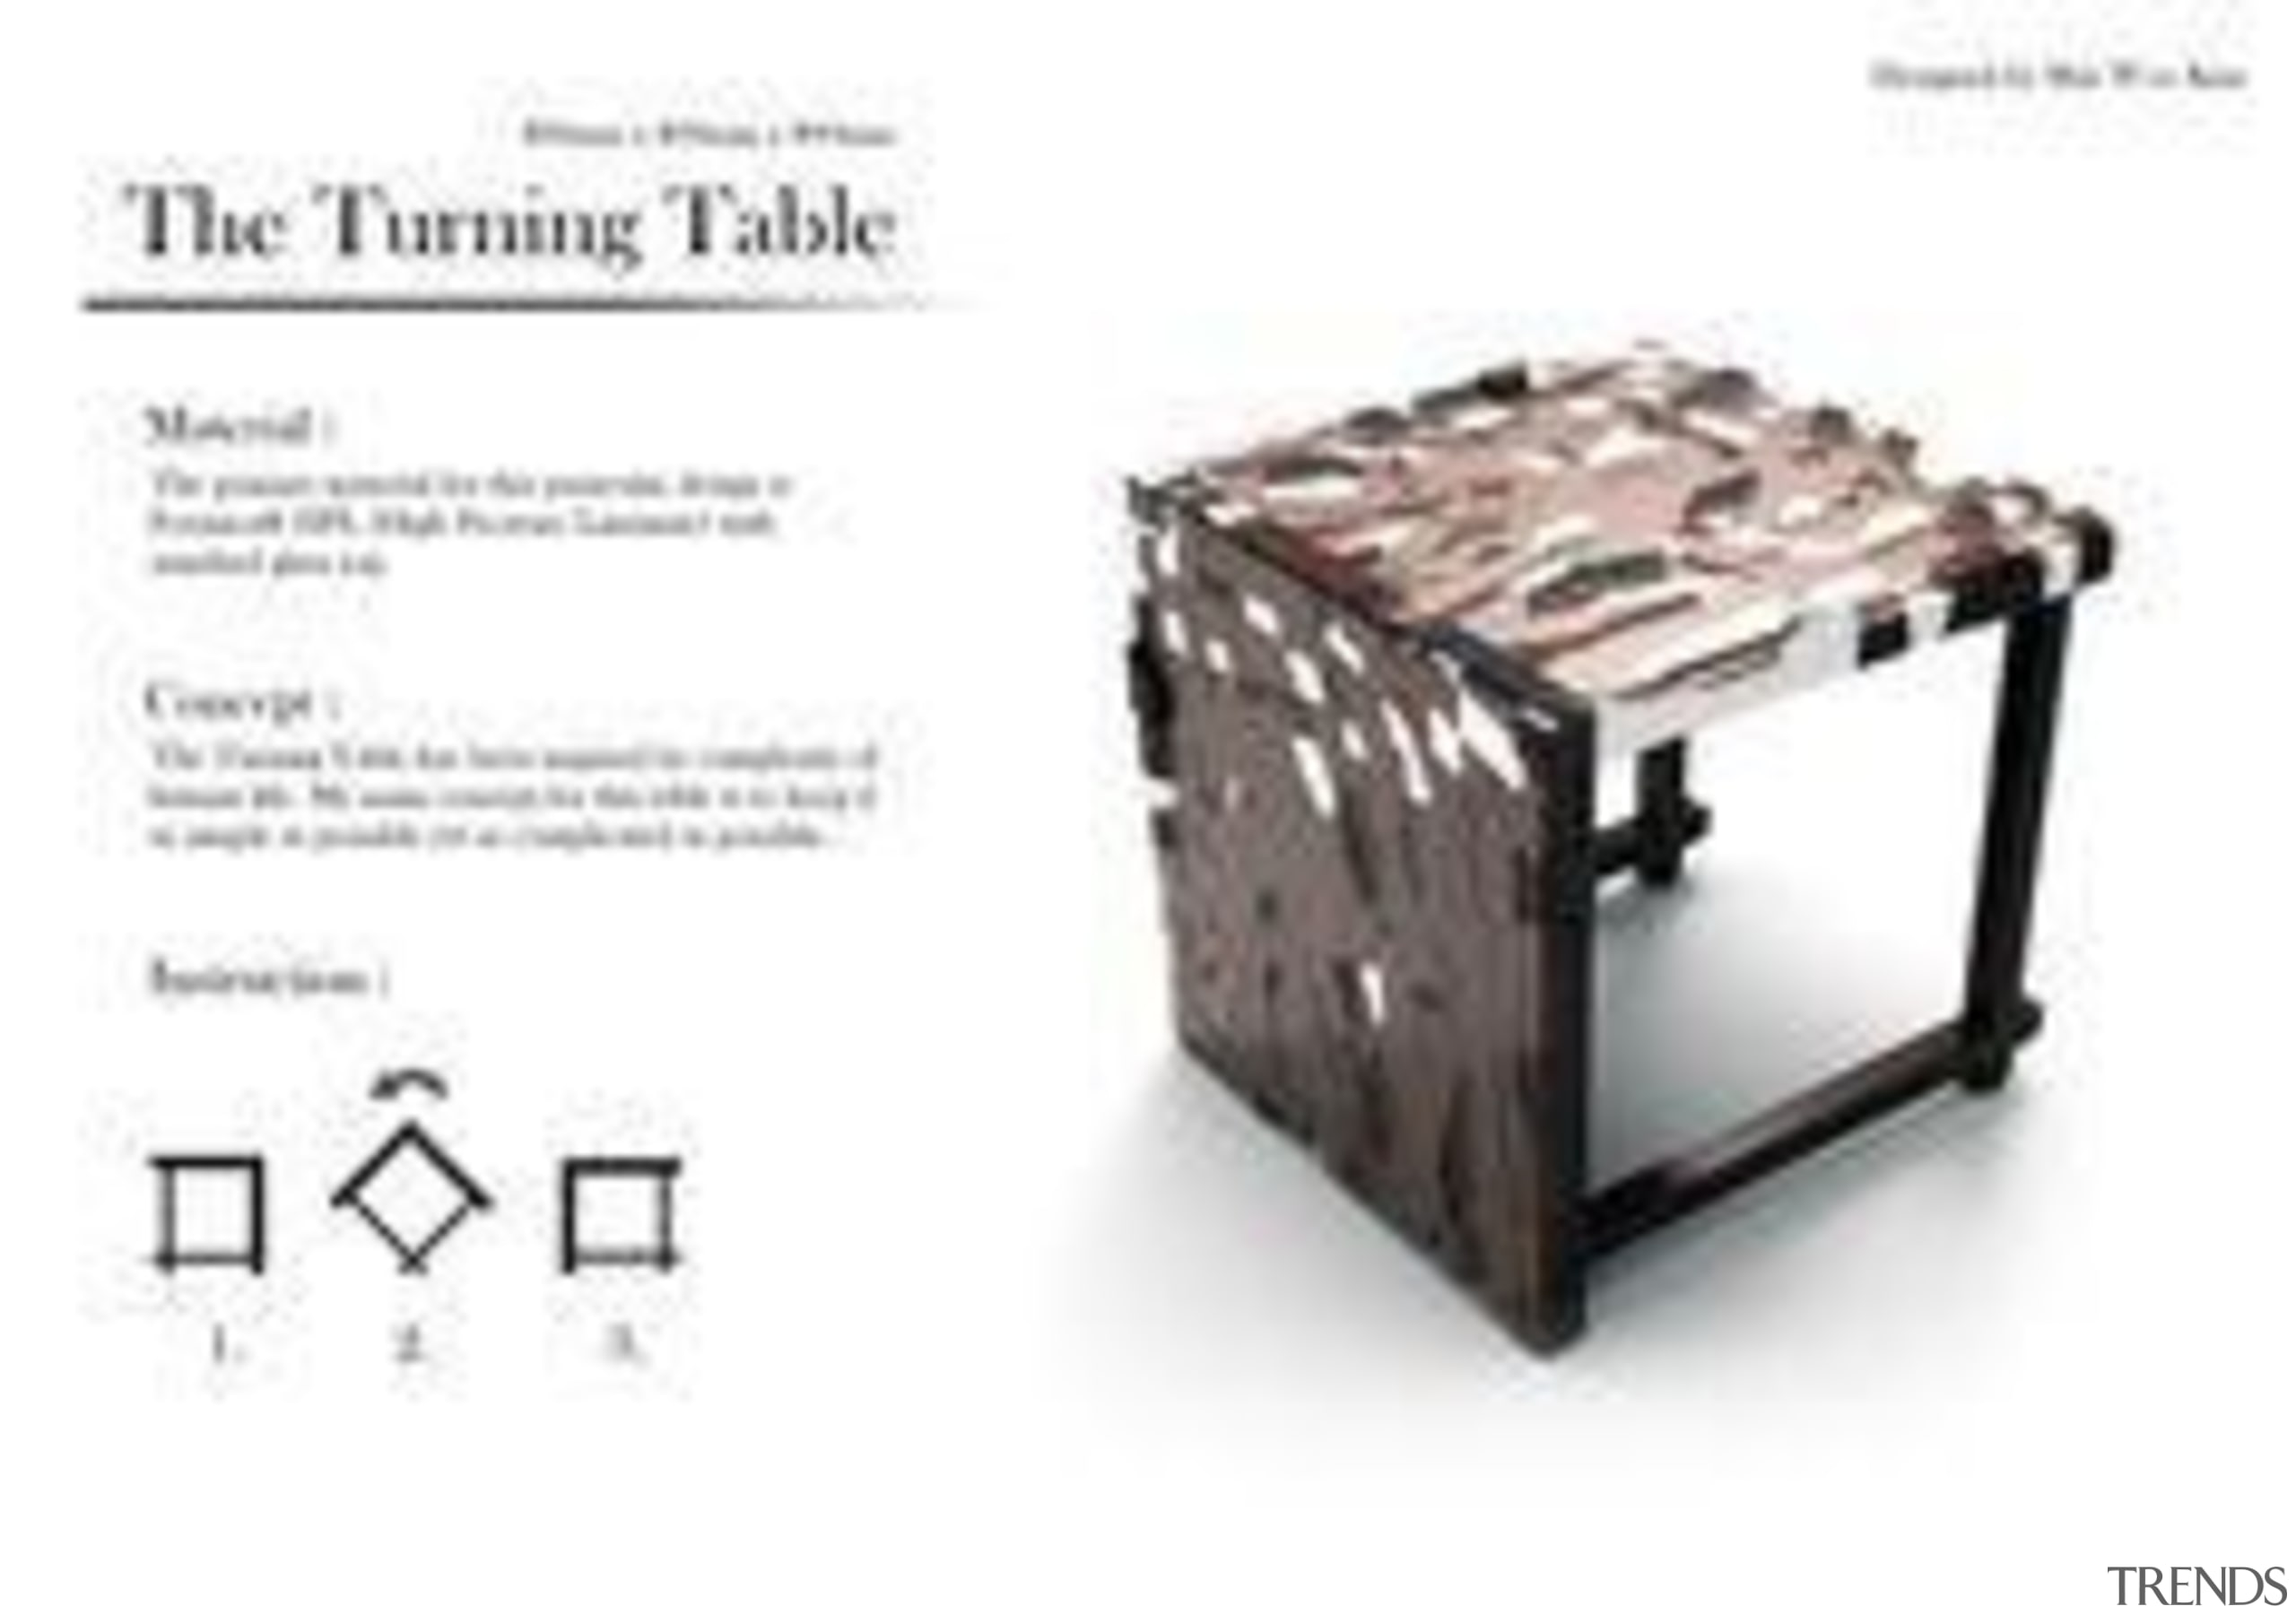 by Min Woo Kim - The Turning Table furniture, product, product design, table, white